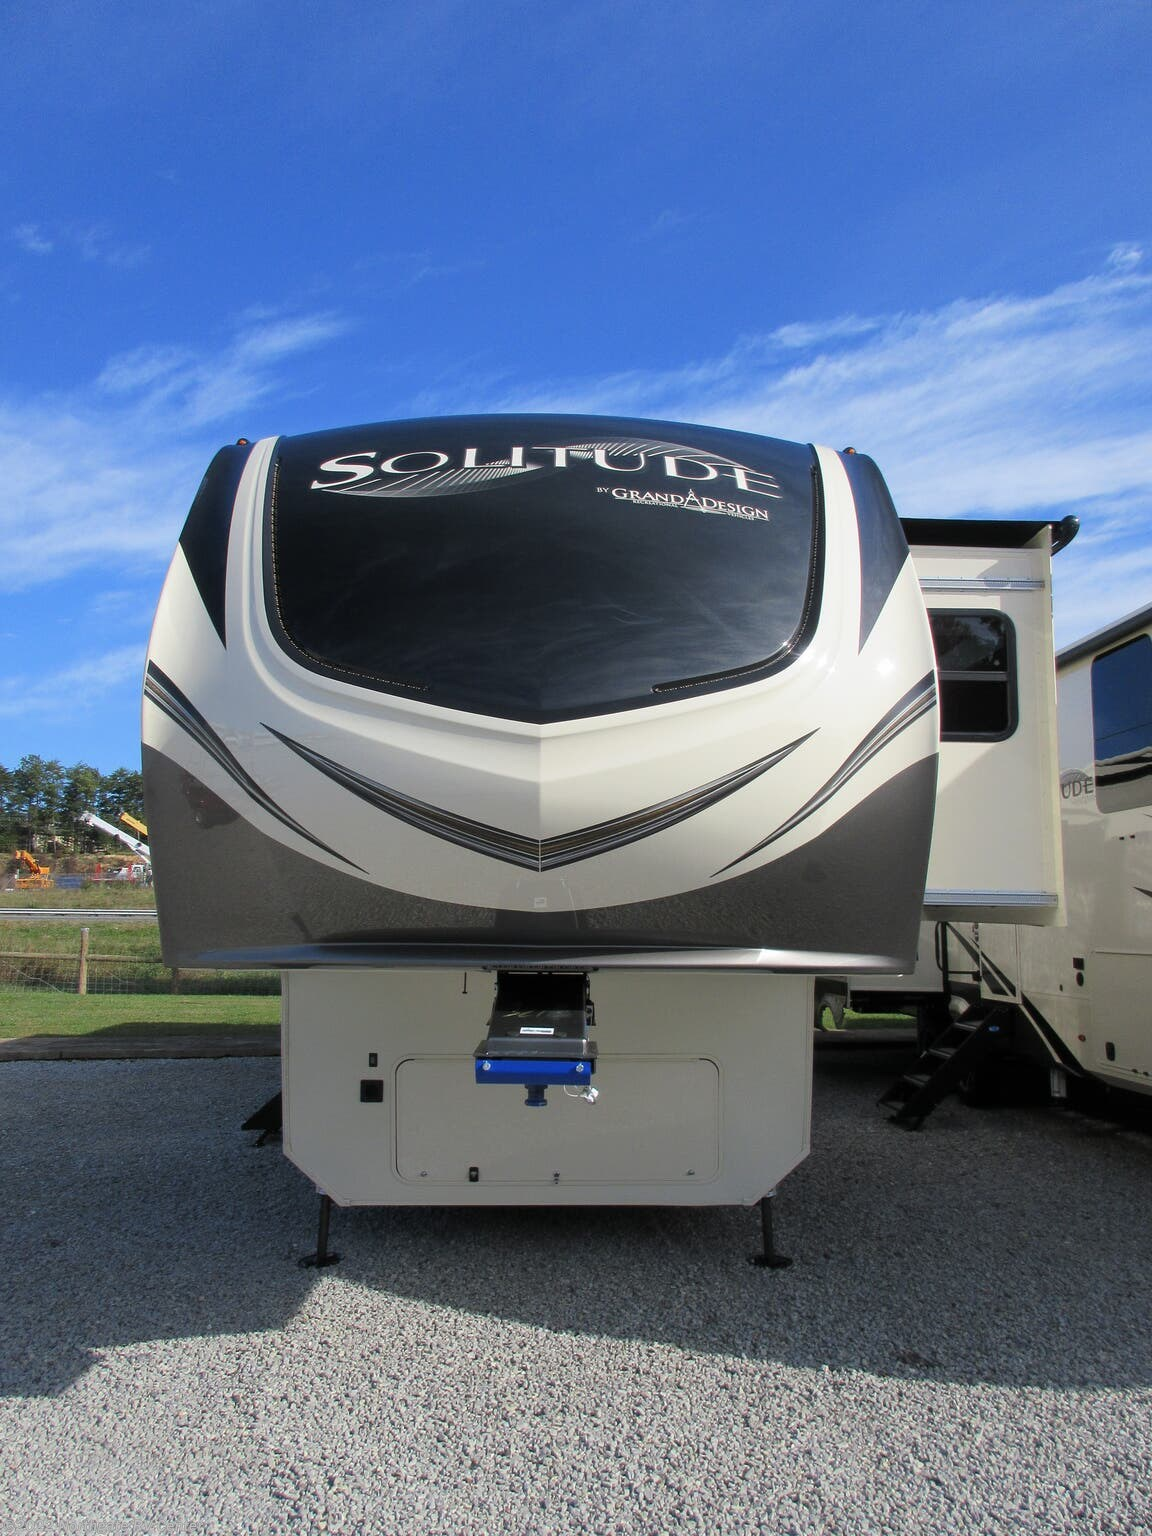 2021 Grand Design Solitude 345GK-R